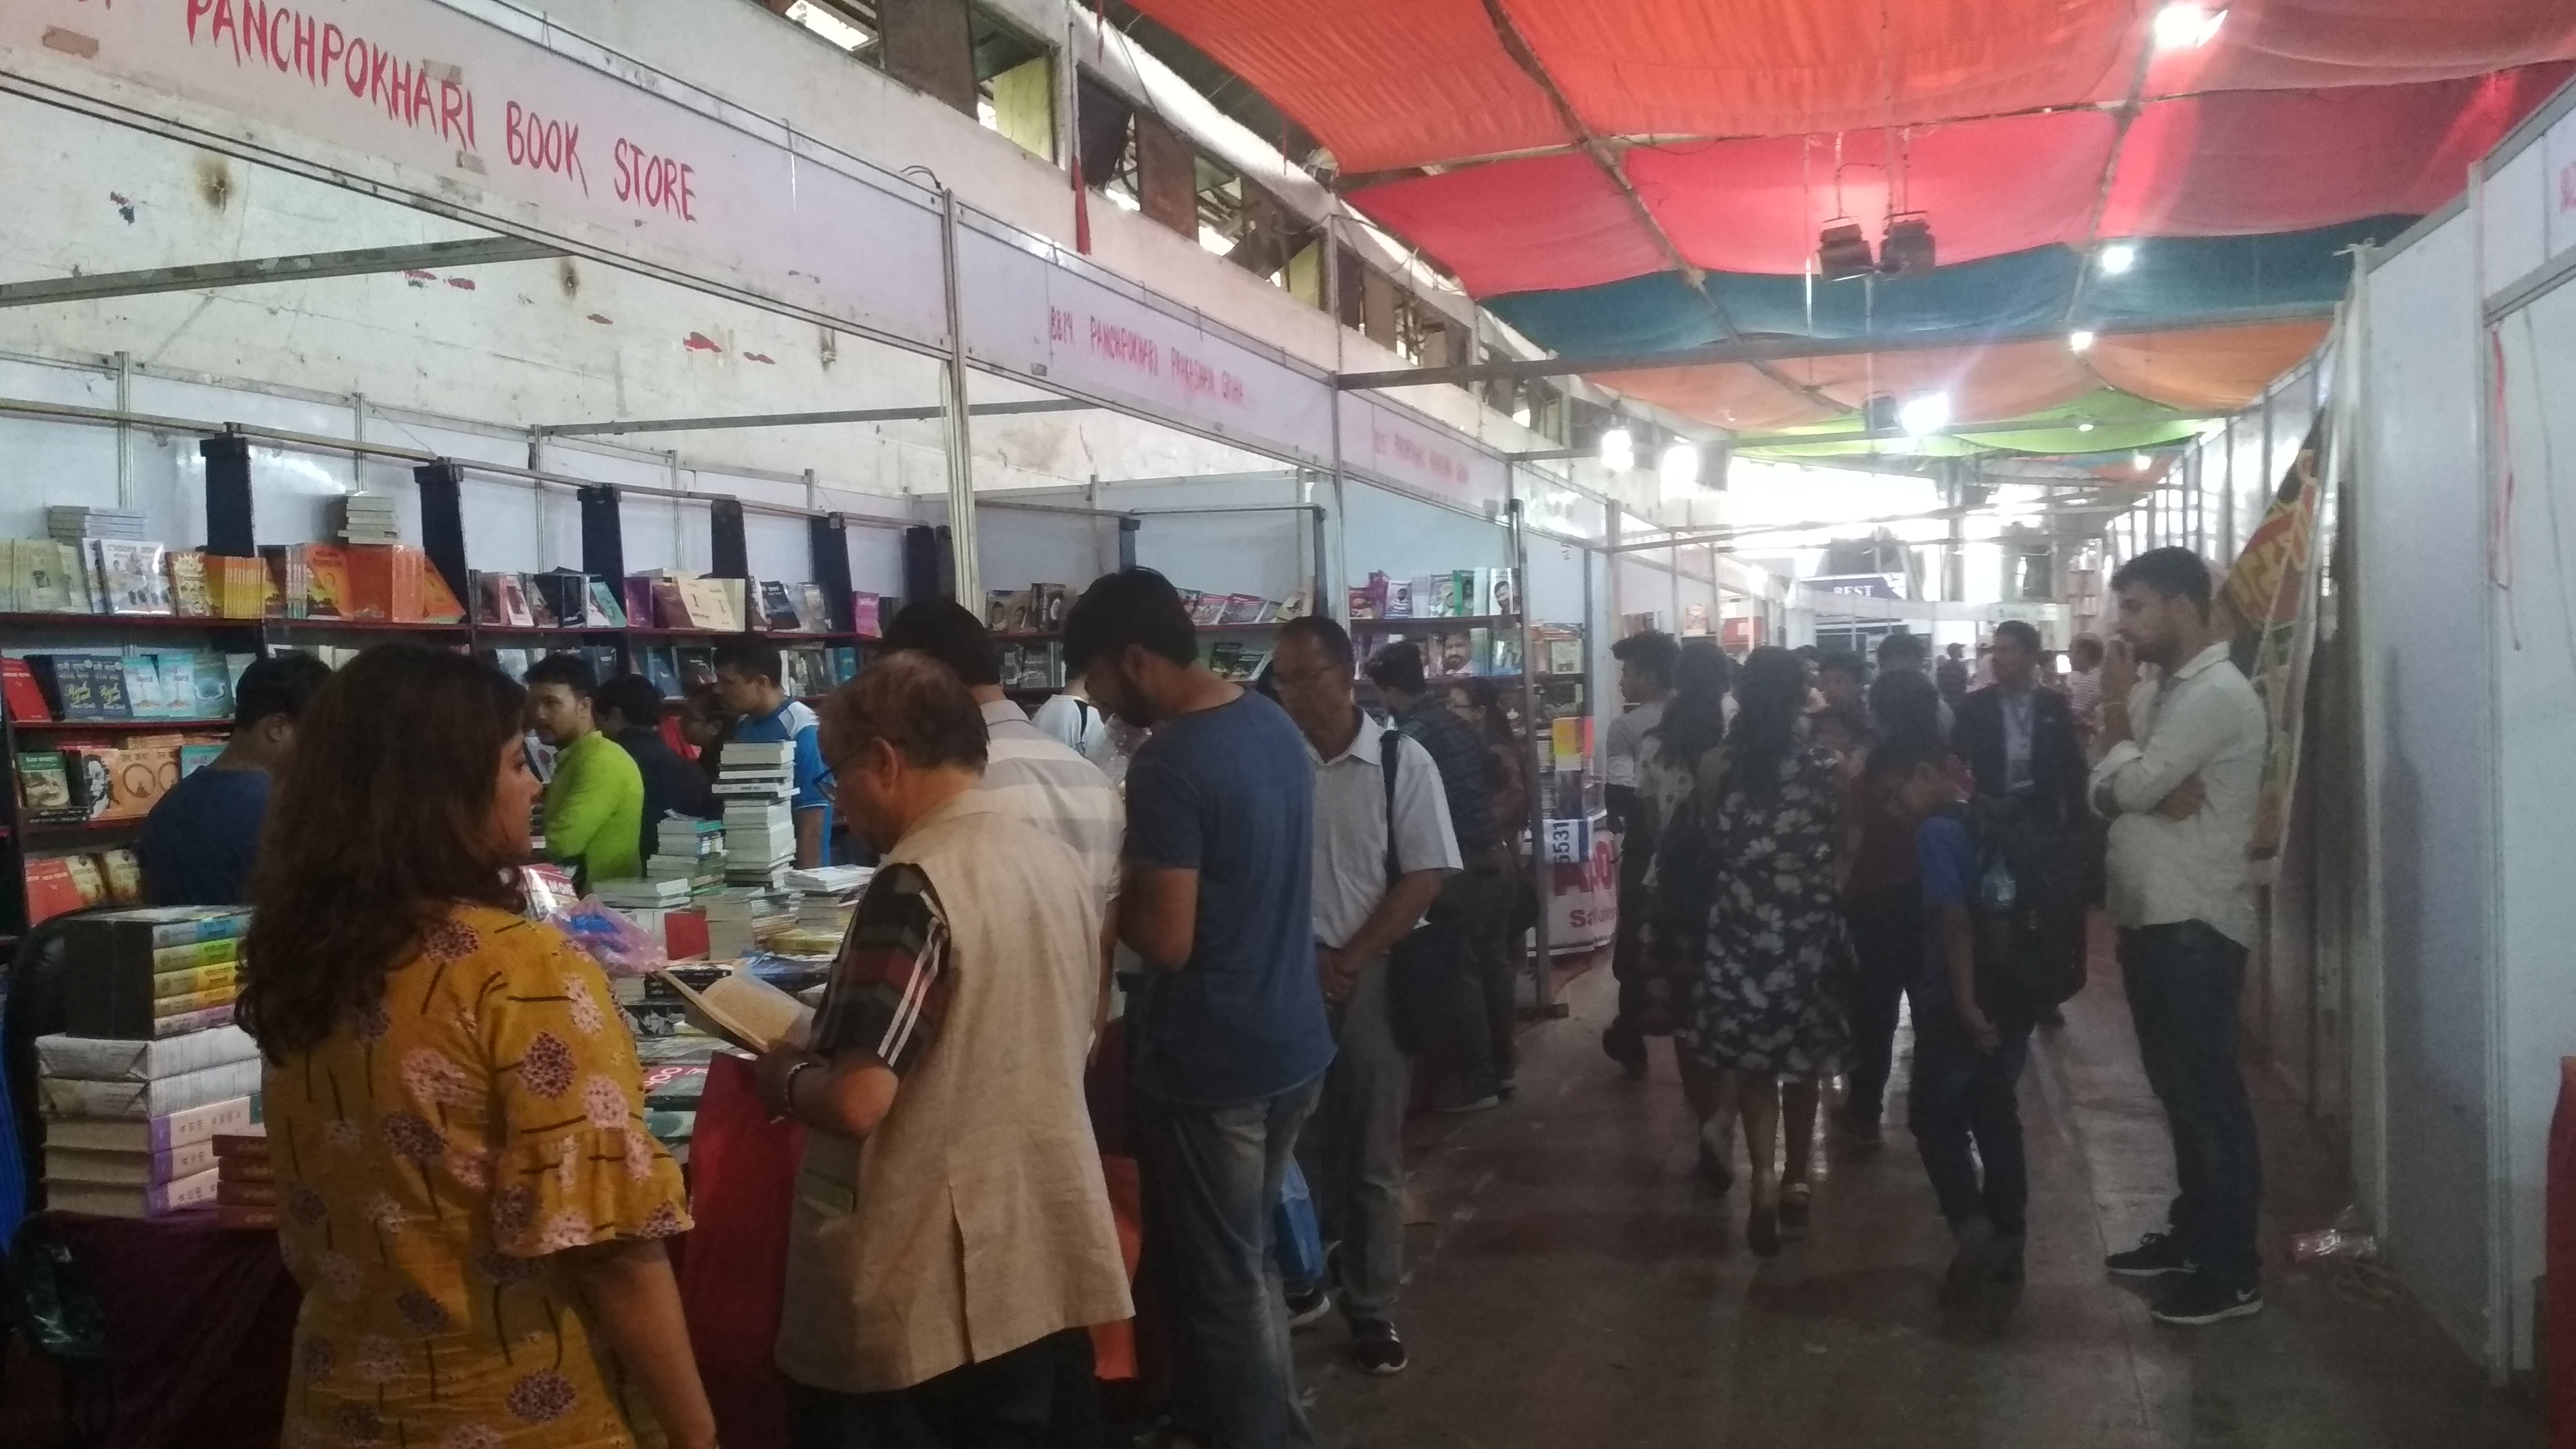 Visitors explore the stalls showcasing books and education materials inn22nd Nepal International nBook Fair organised by Global Exposition and Management Services Pvt Ltd, at Bhrikuti Mandap Exhibition Hall in Kathmandu, from June 1 to 9, on Saturday, June 9, 2018. Photo: Sureis/THT Online